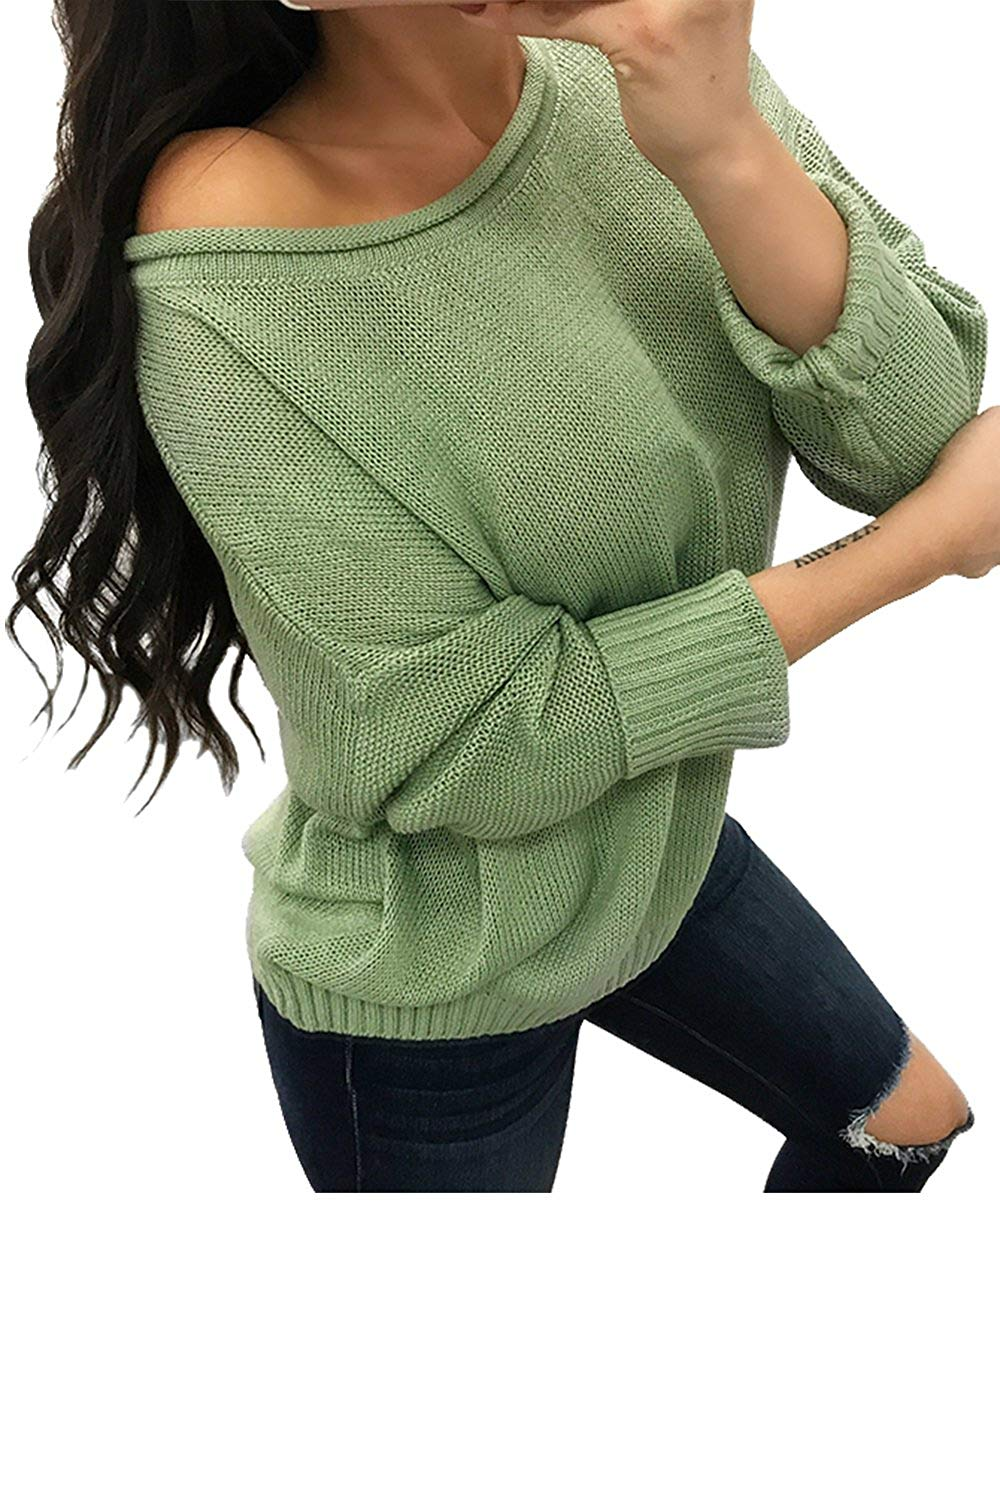 Get Quotations · ReachMe Women s Oversized Sweaters Casual Loose Fit Knitted  Pullover Tops Jumper 2bc77c98c